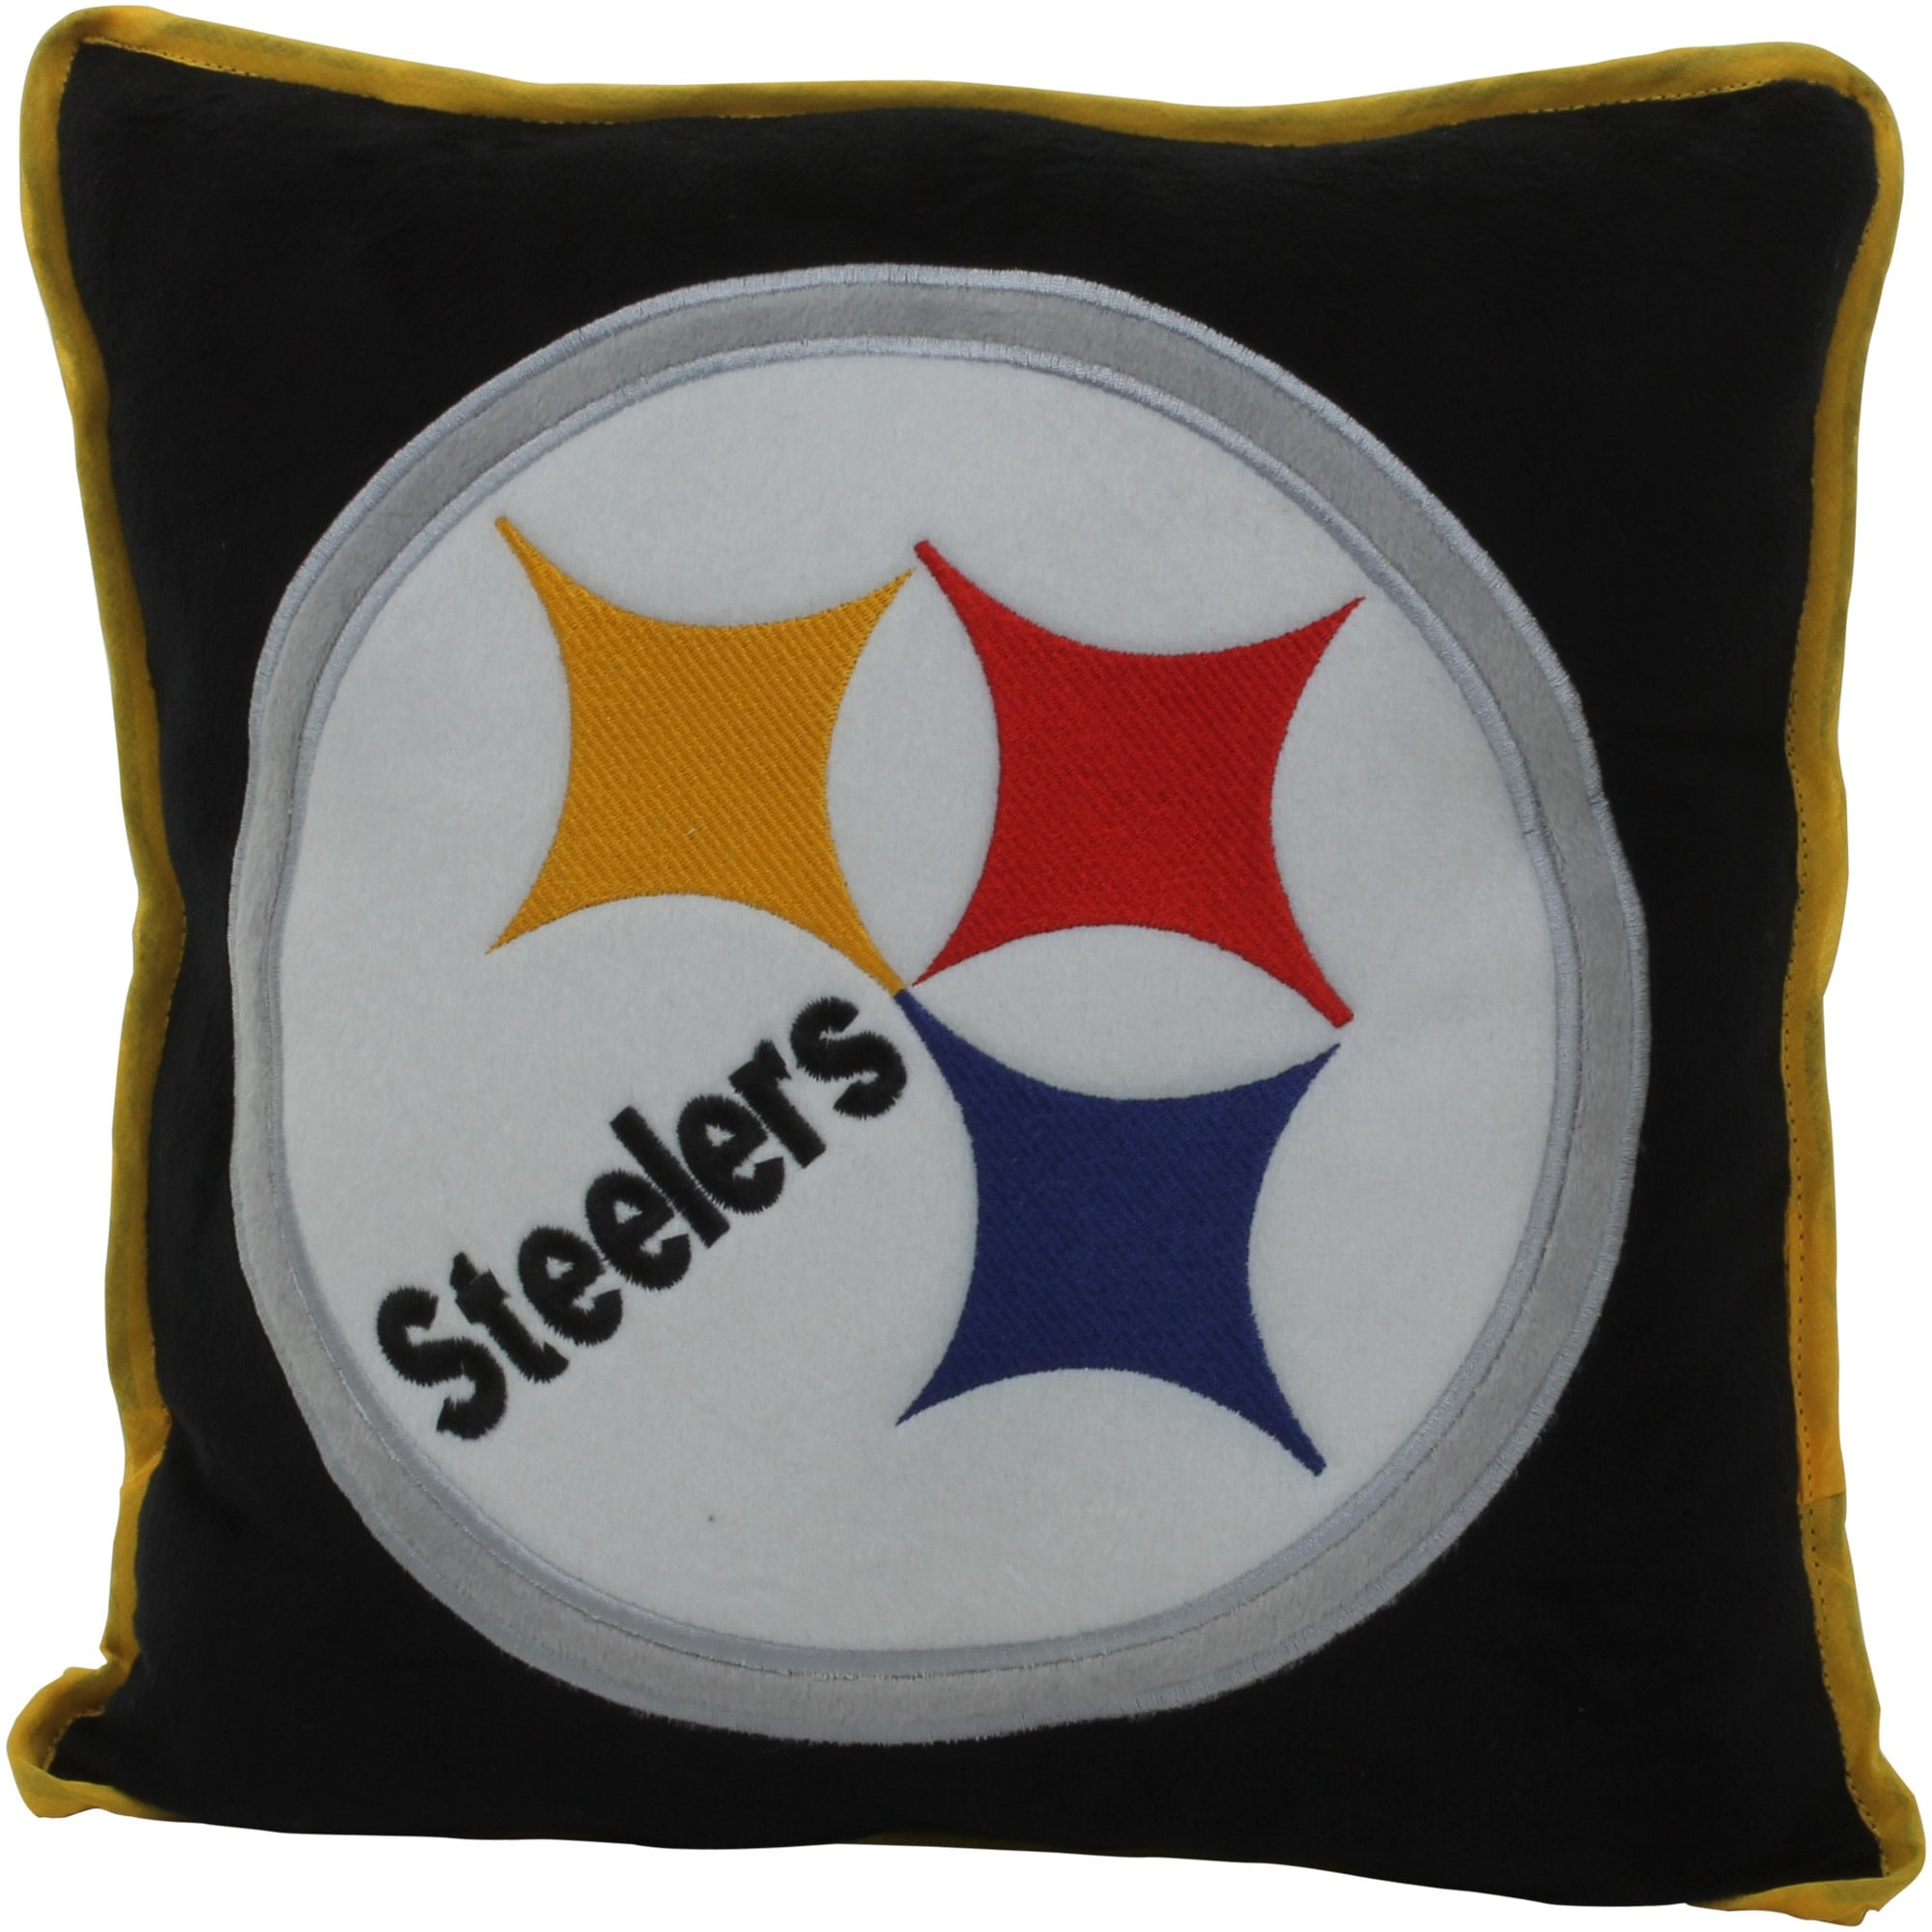 Pittsburgh Steelers Pillow Steelers Pillow Steelers